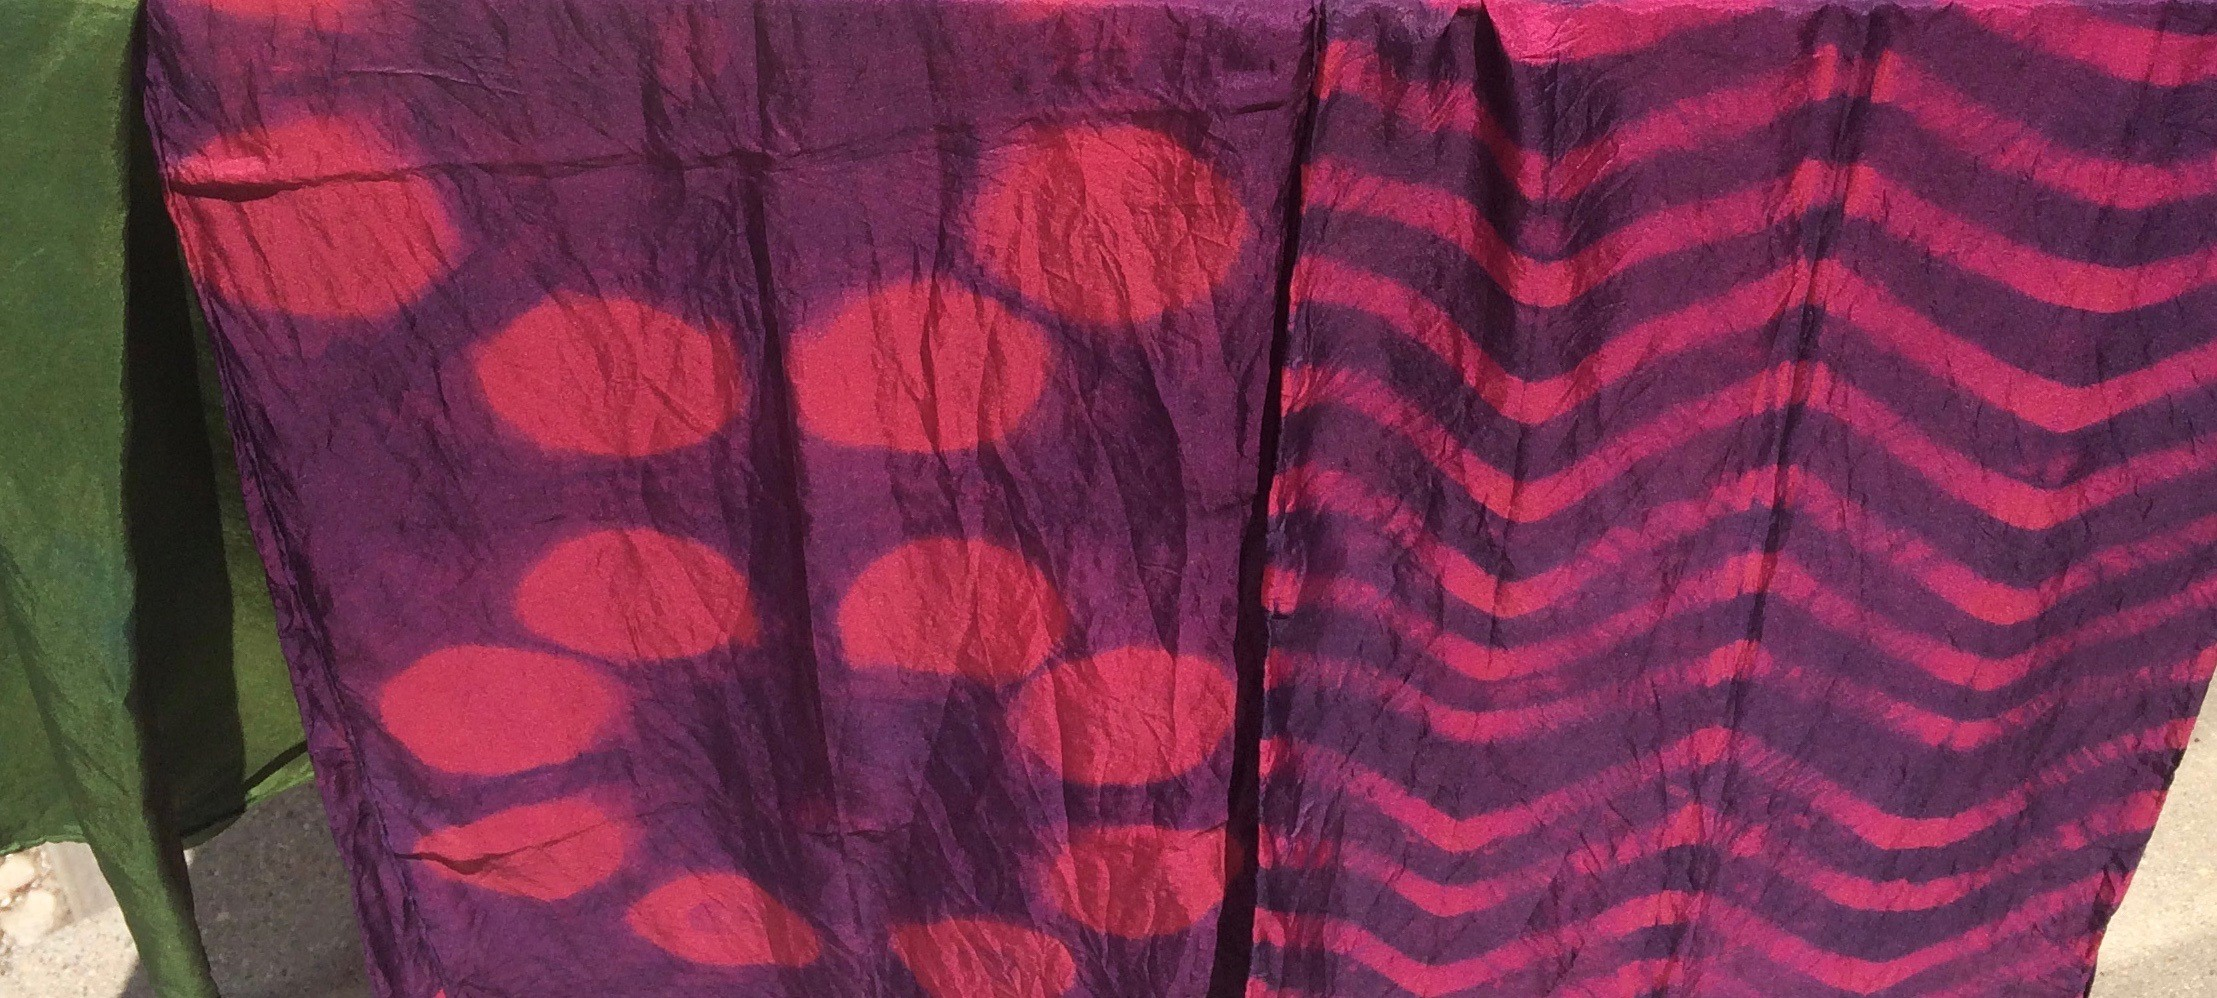 Natural Dyeing: Overdyeing Patterns with Griffin Dyeworks